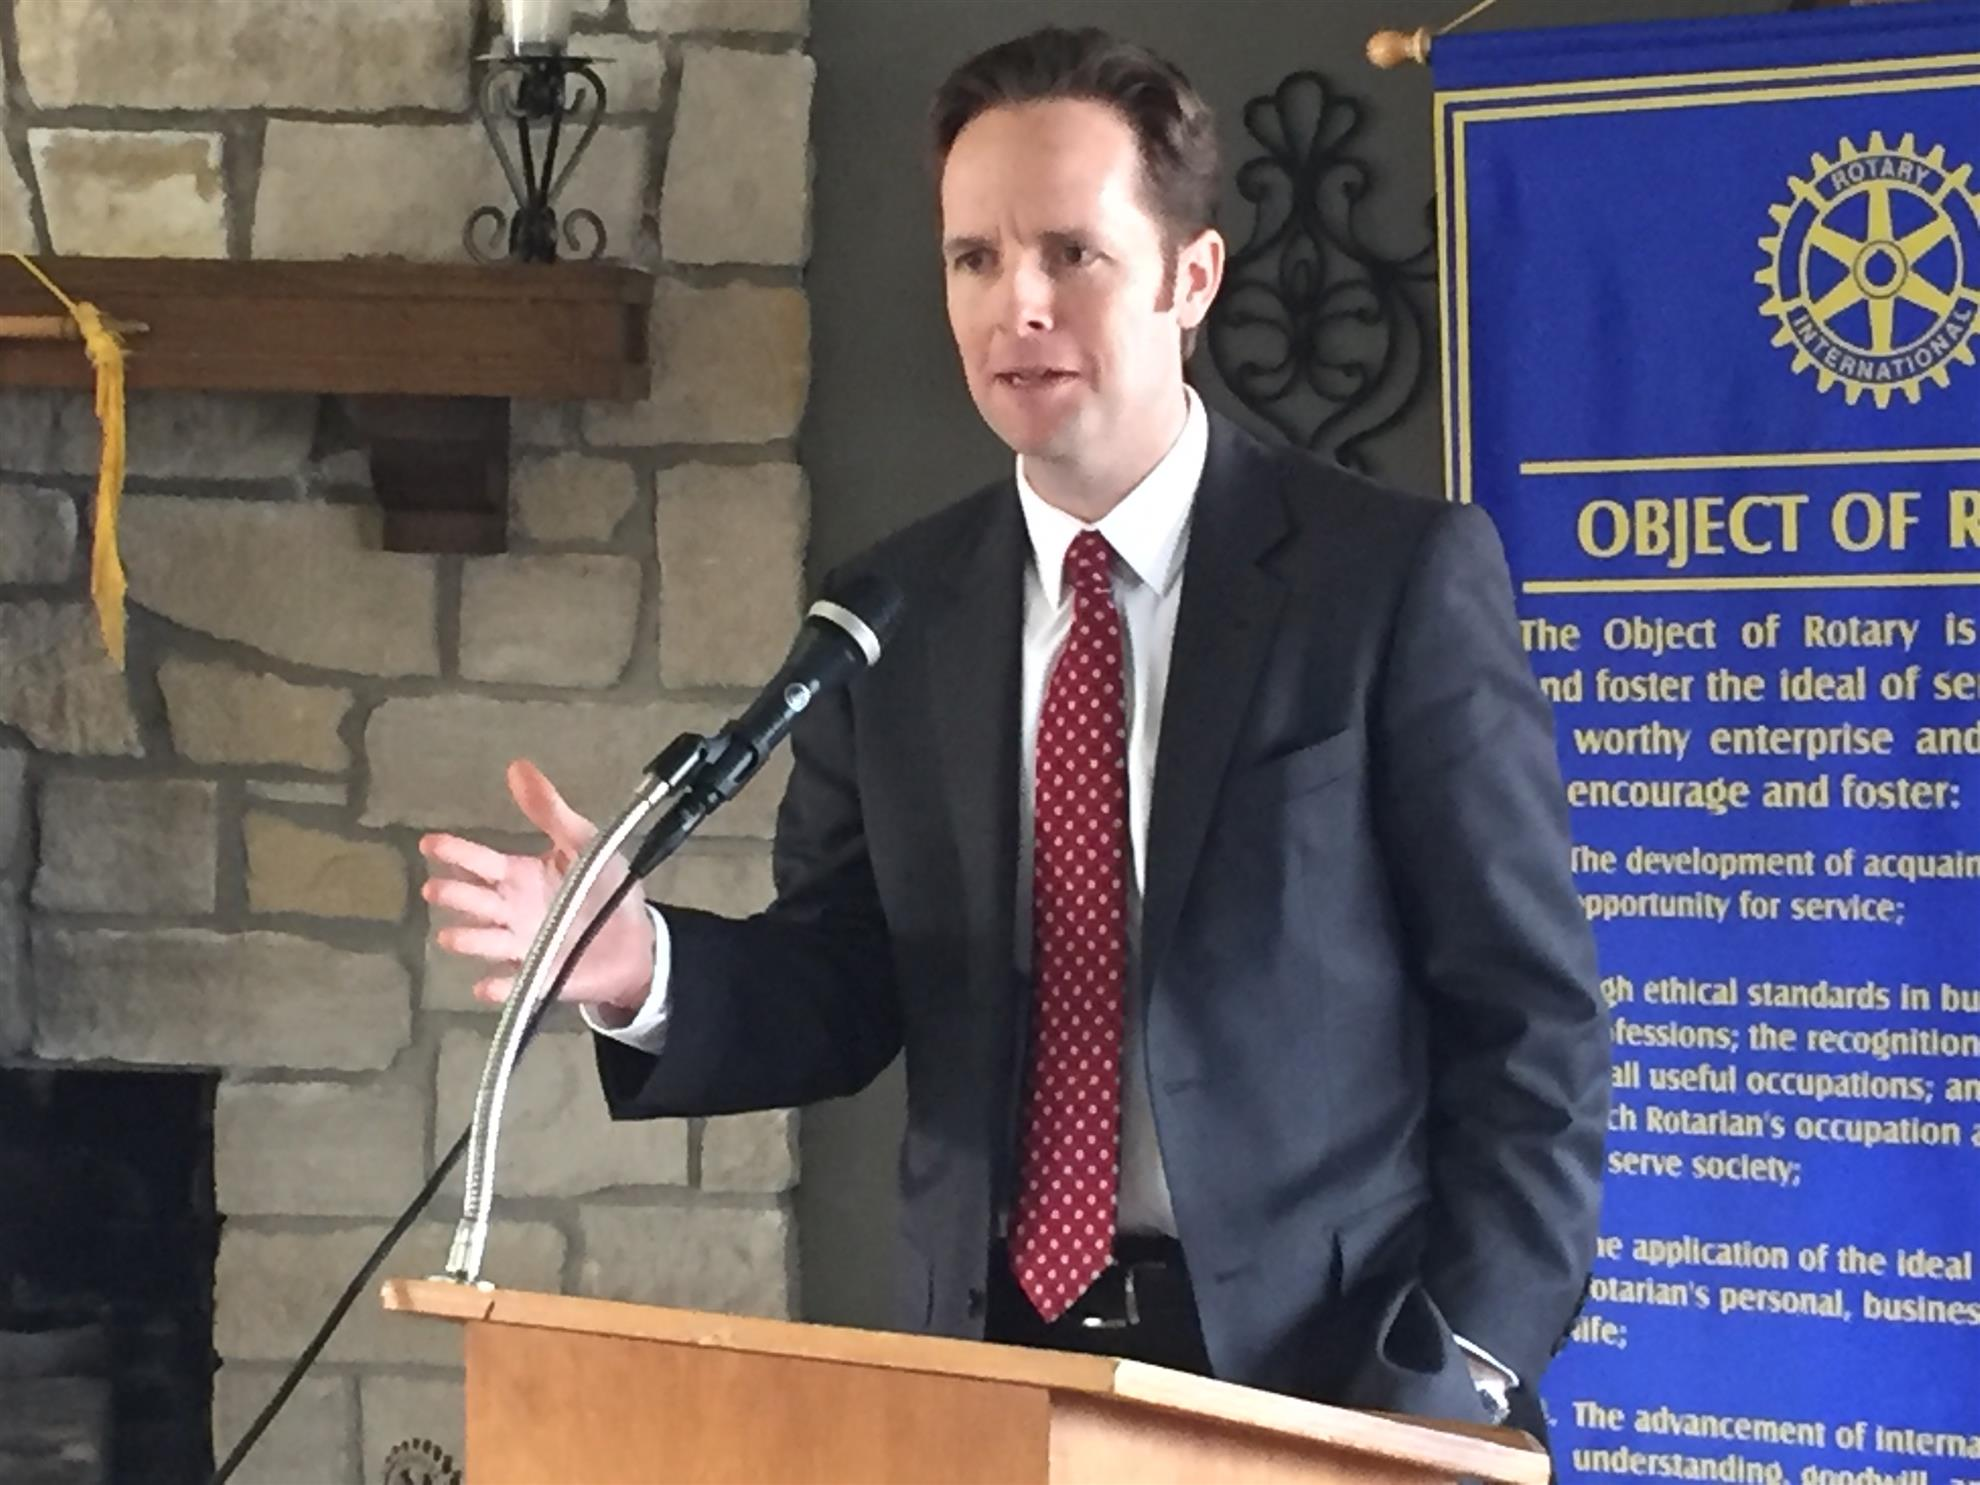 Ed O'Malley speaks to the Emporia Rotart Club in February 2017. (Photo from Emporia Rotary Club)